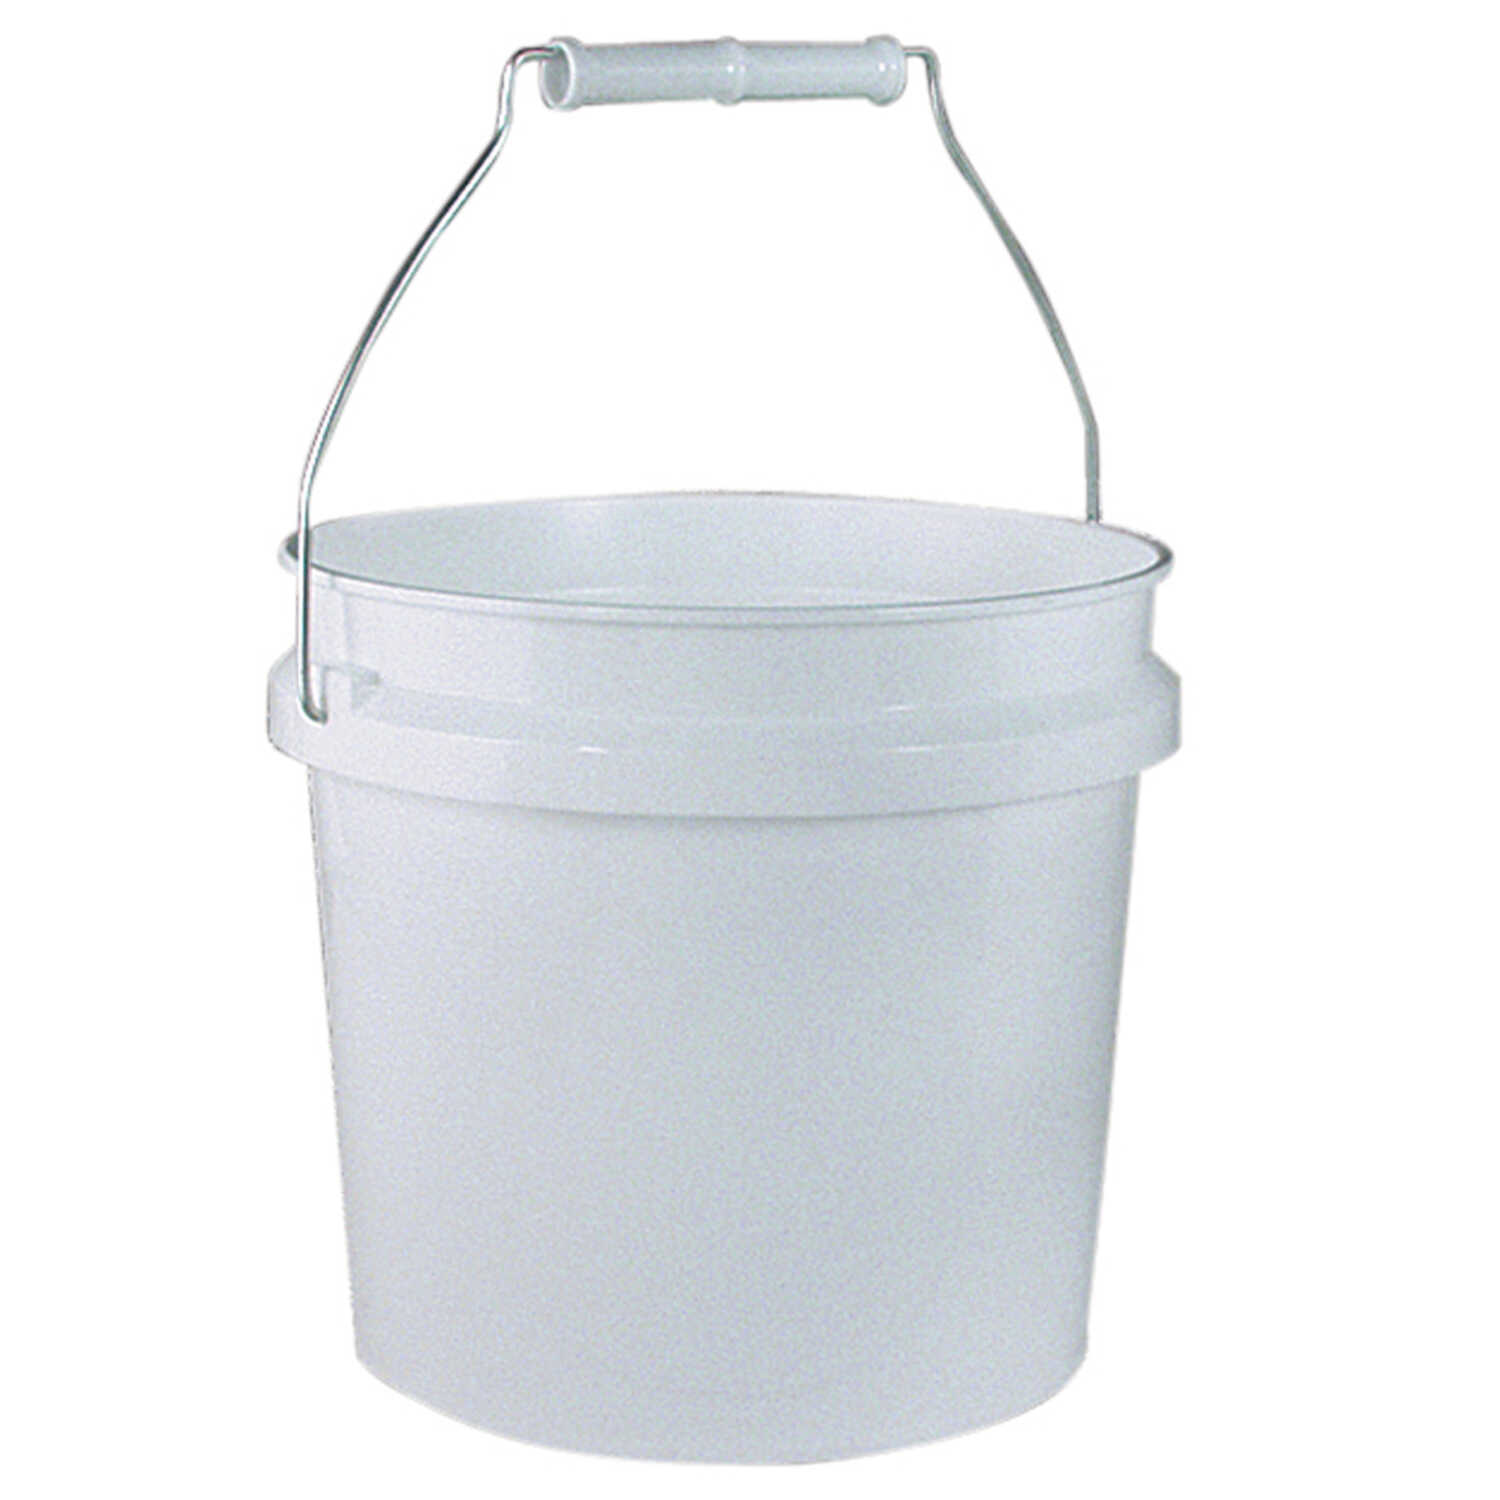 Leaktite  White  1 gal. Plastic  Bucket